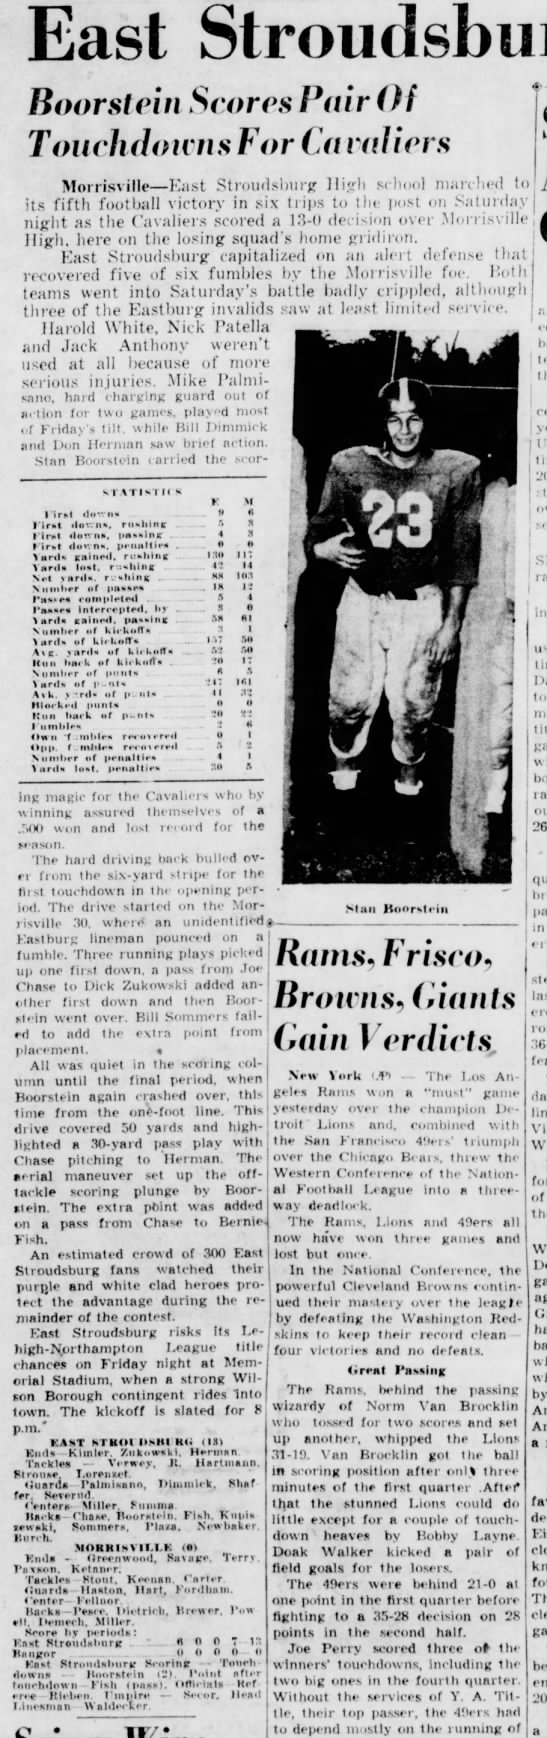 Pocono Record. October 19 1953.Boorstein Scores Pair of Touchdowns for Cavaliers -